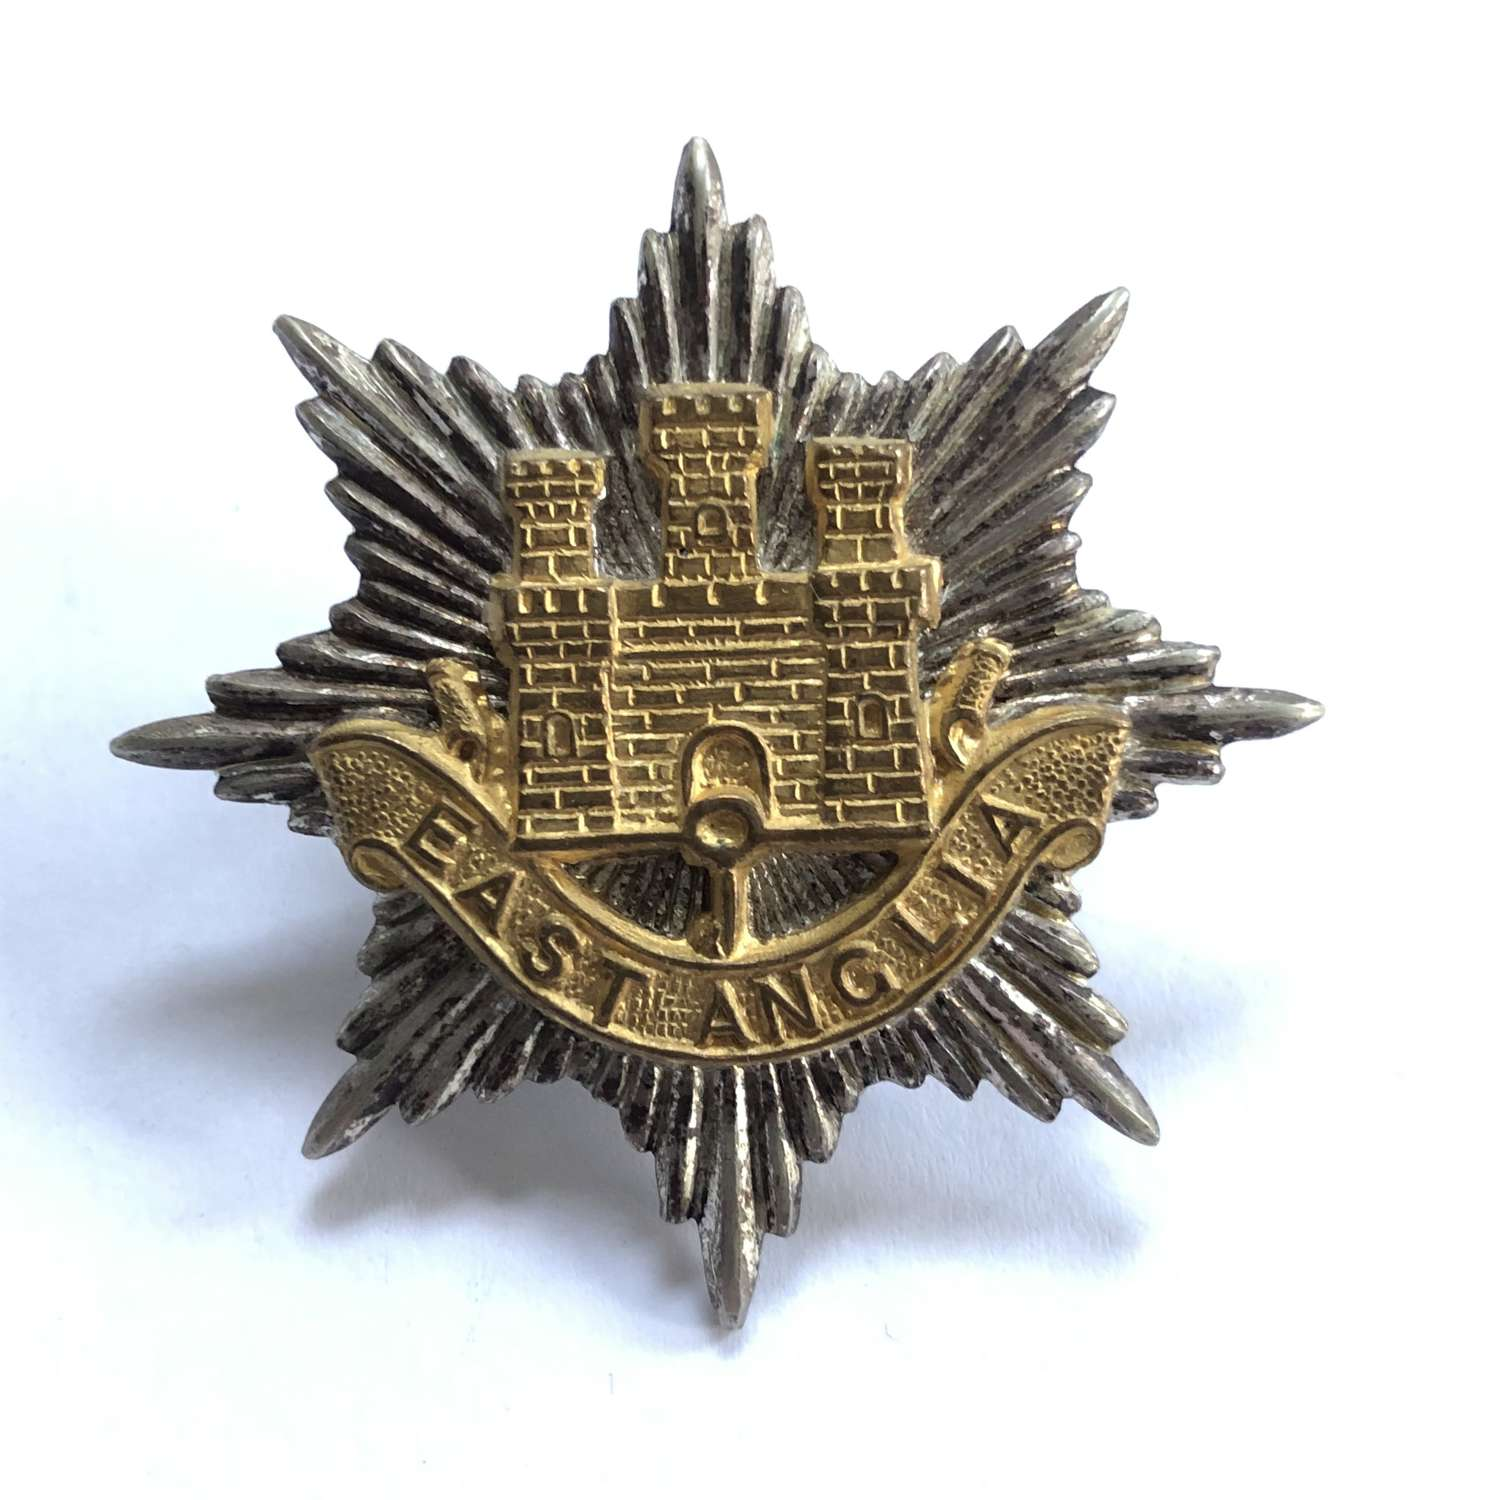 East Anglian Brigade Officer's silvered and gilt cap badge c1948-68